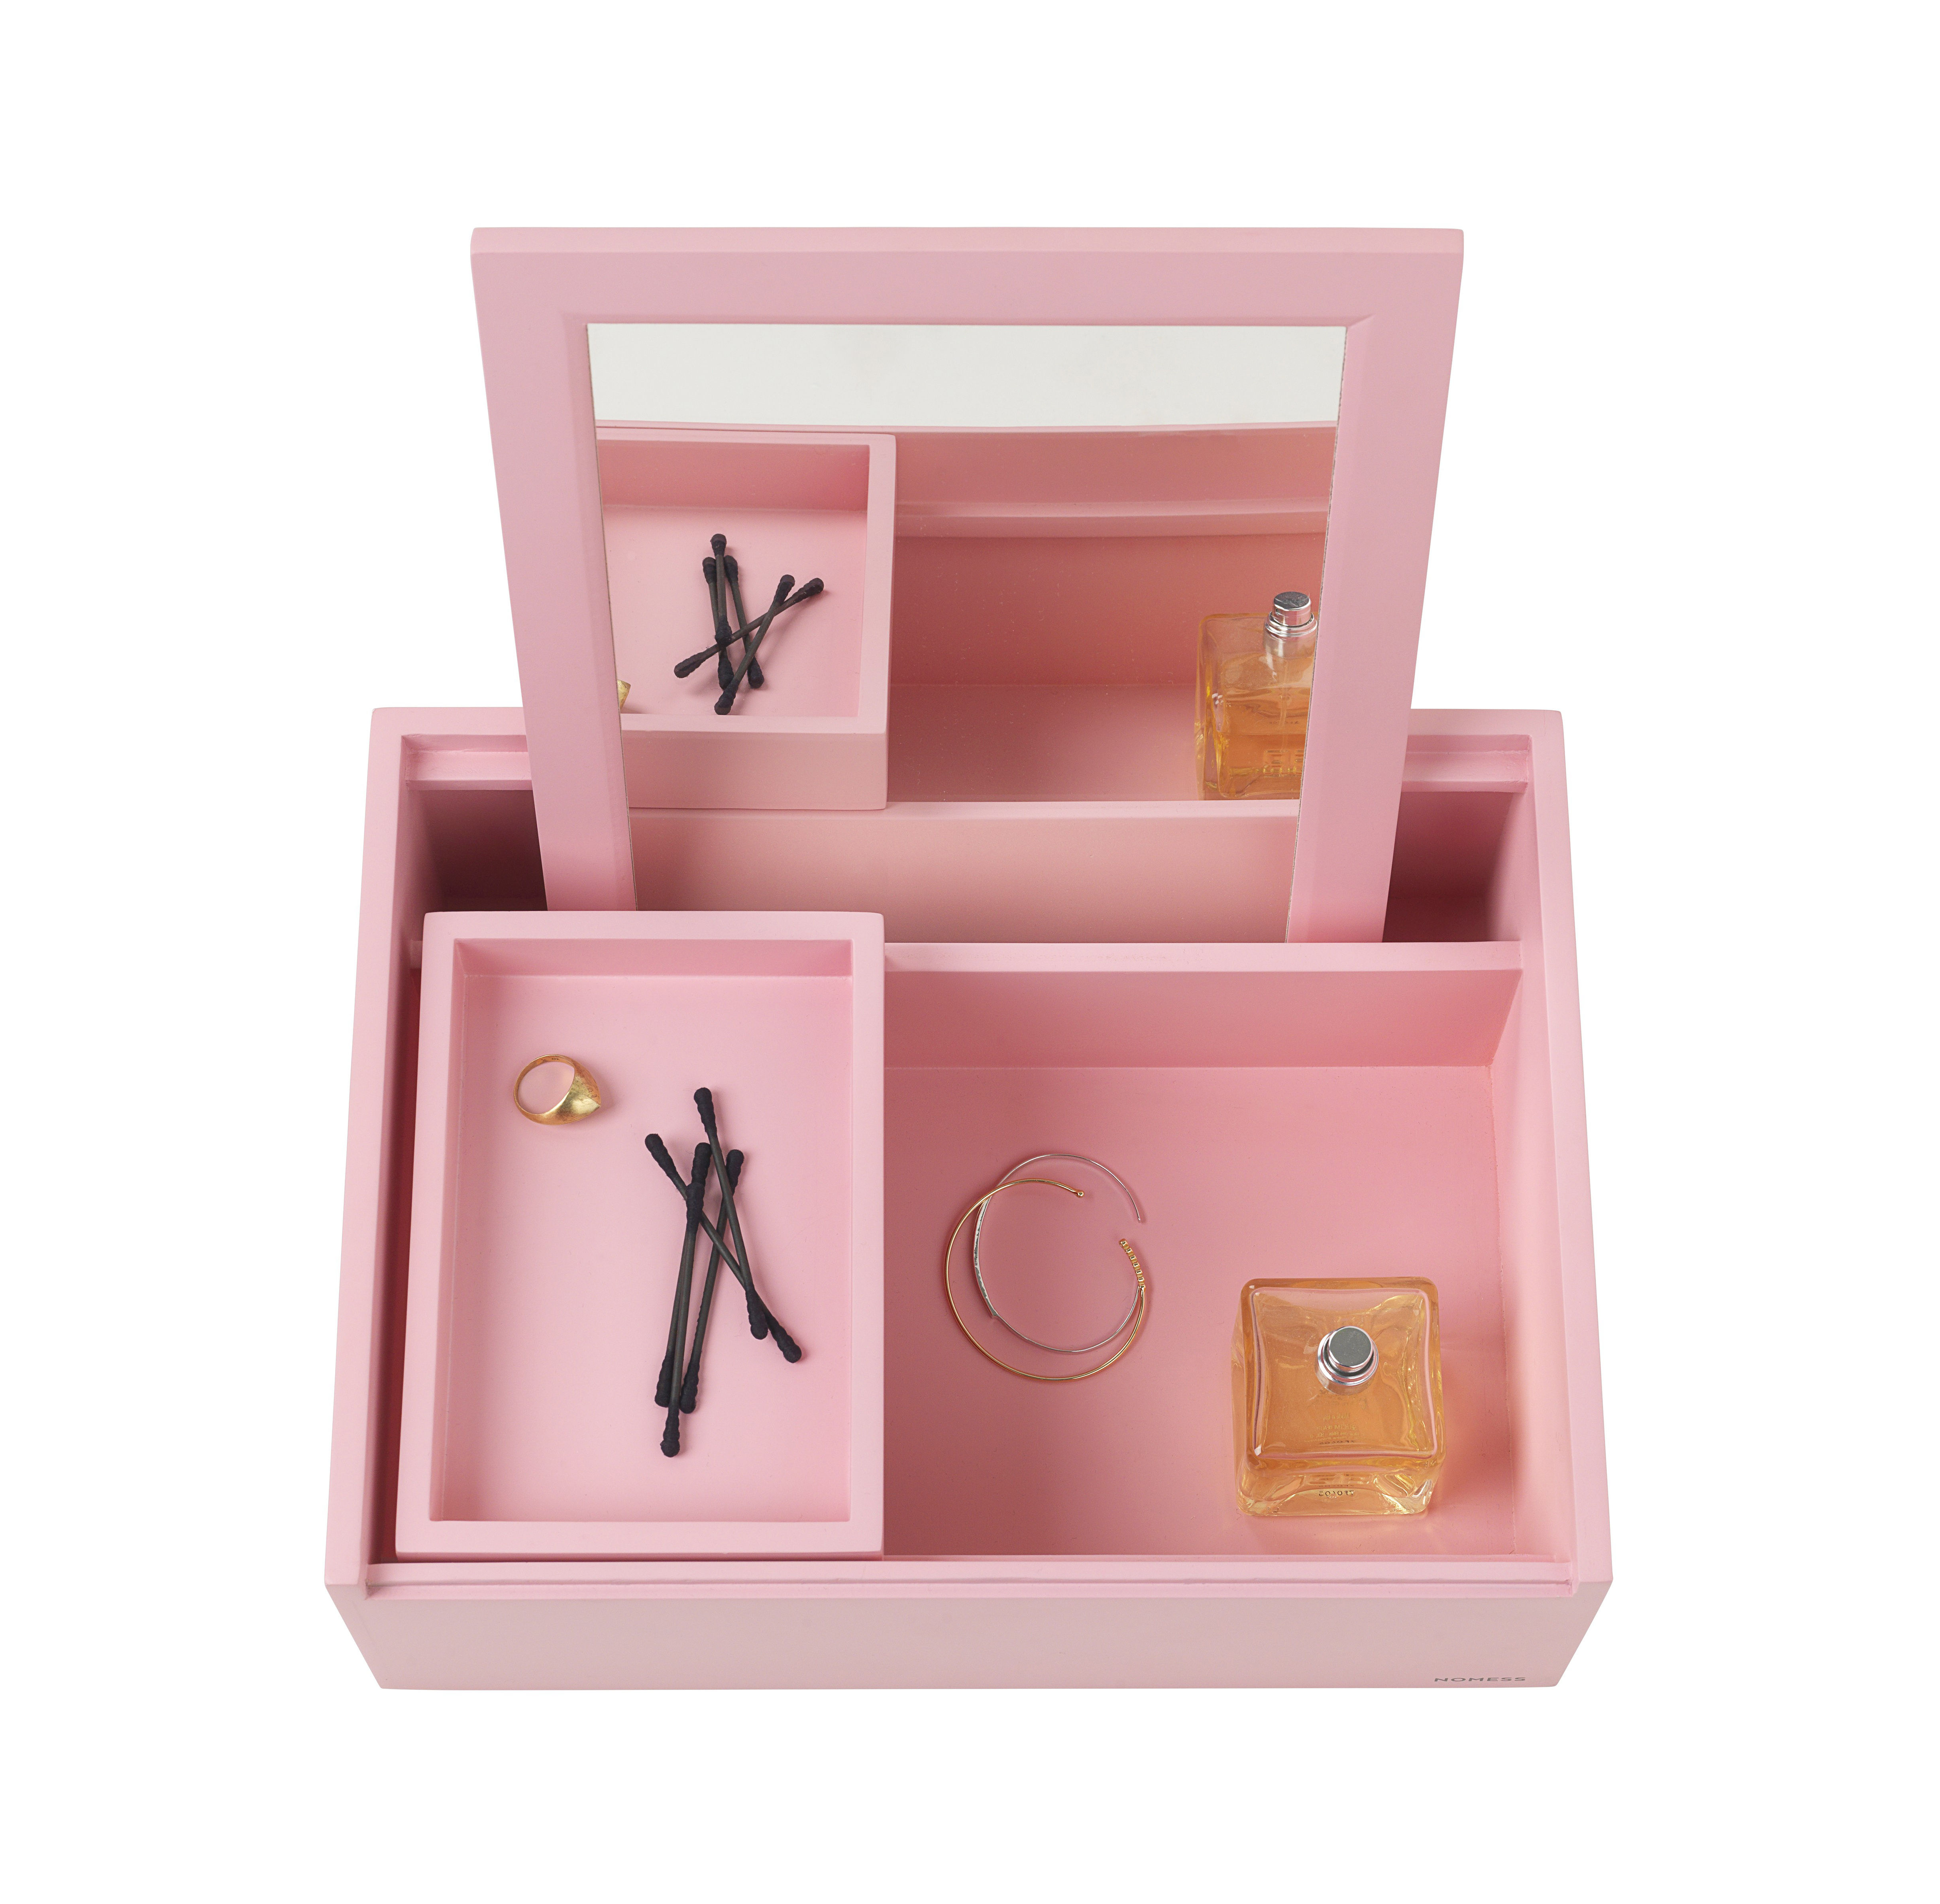 bo te maquillage balsabox personal mini nomess rose. Black Bedroom Furniture Sets. Home Design Ideas